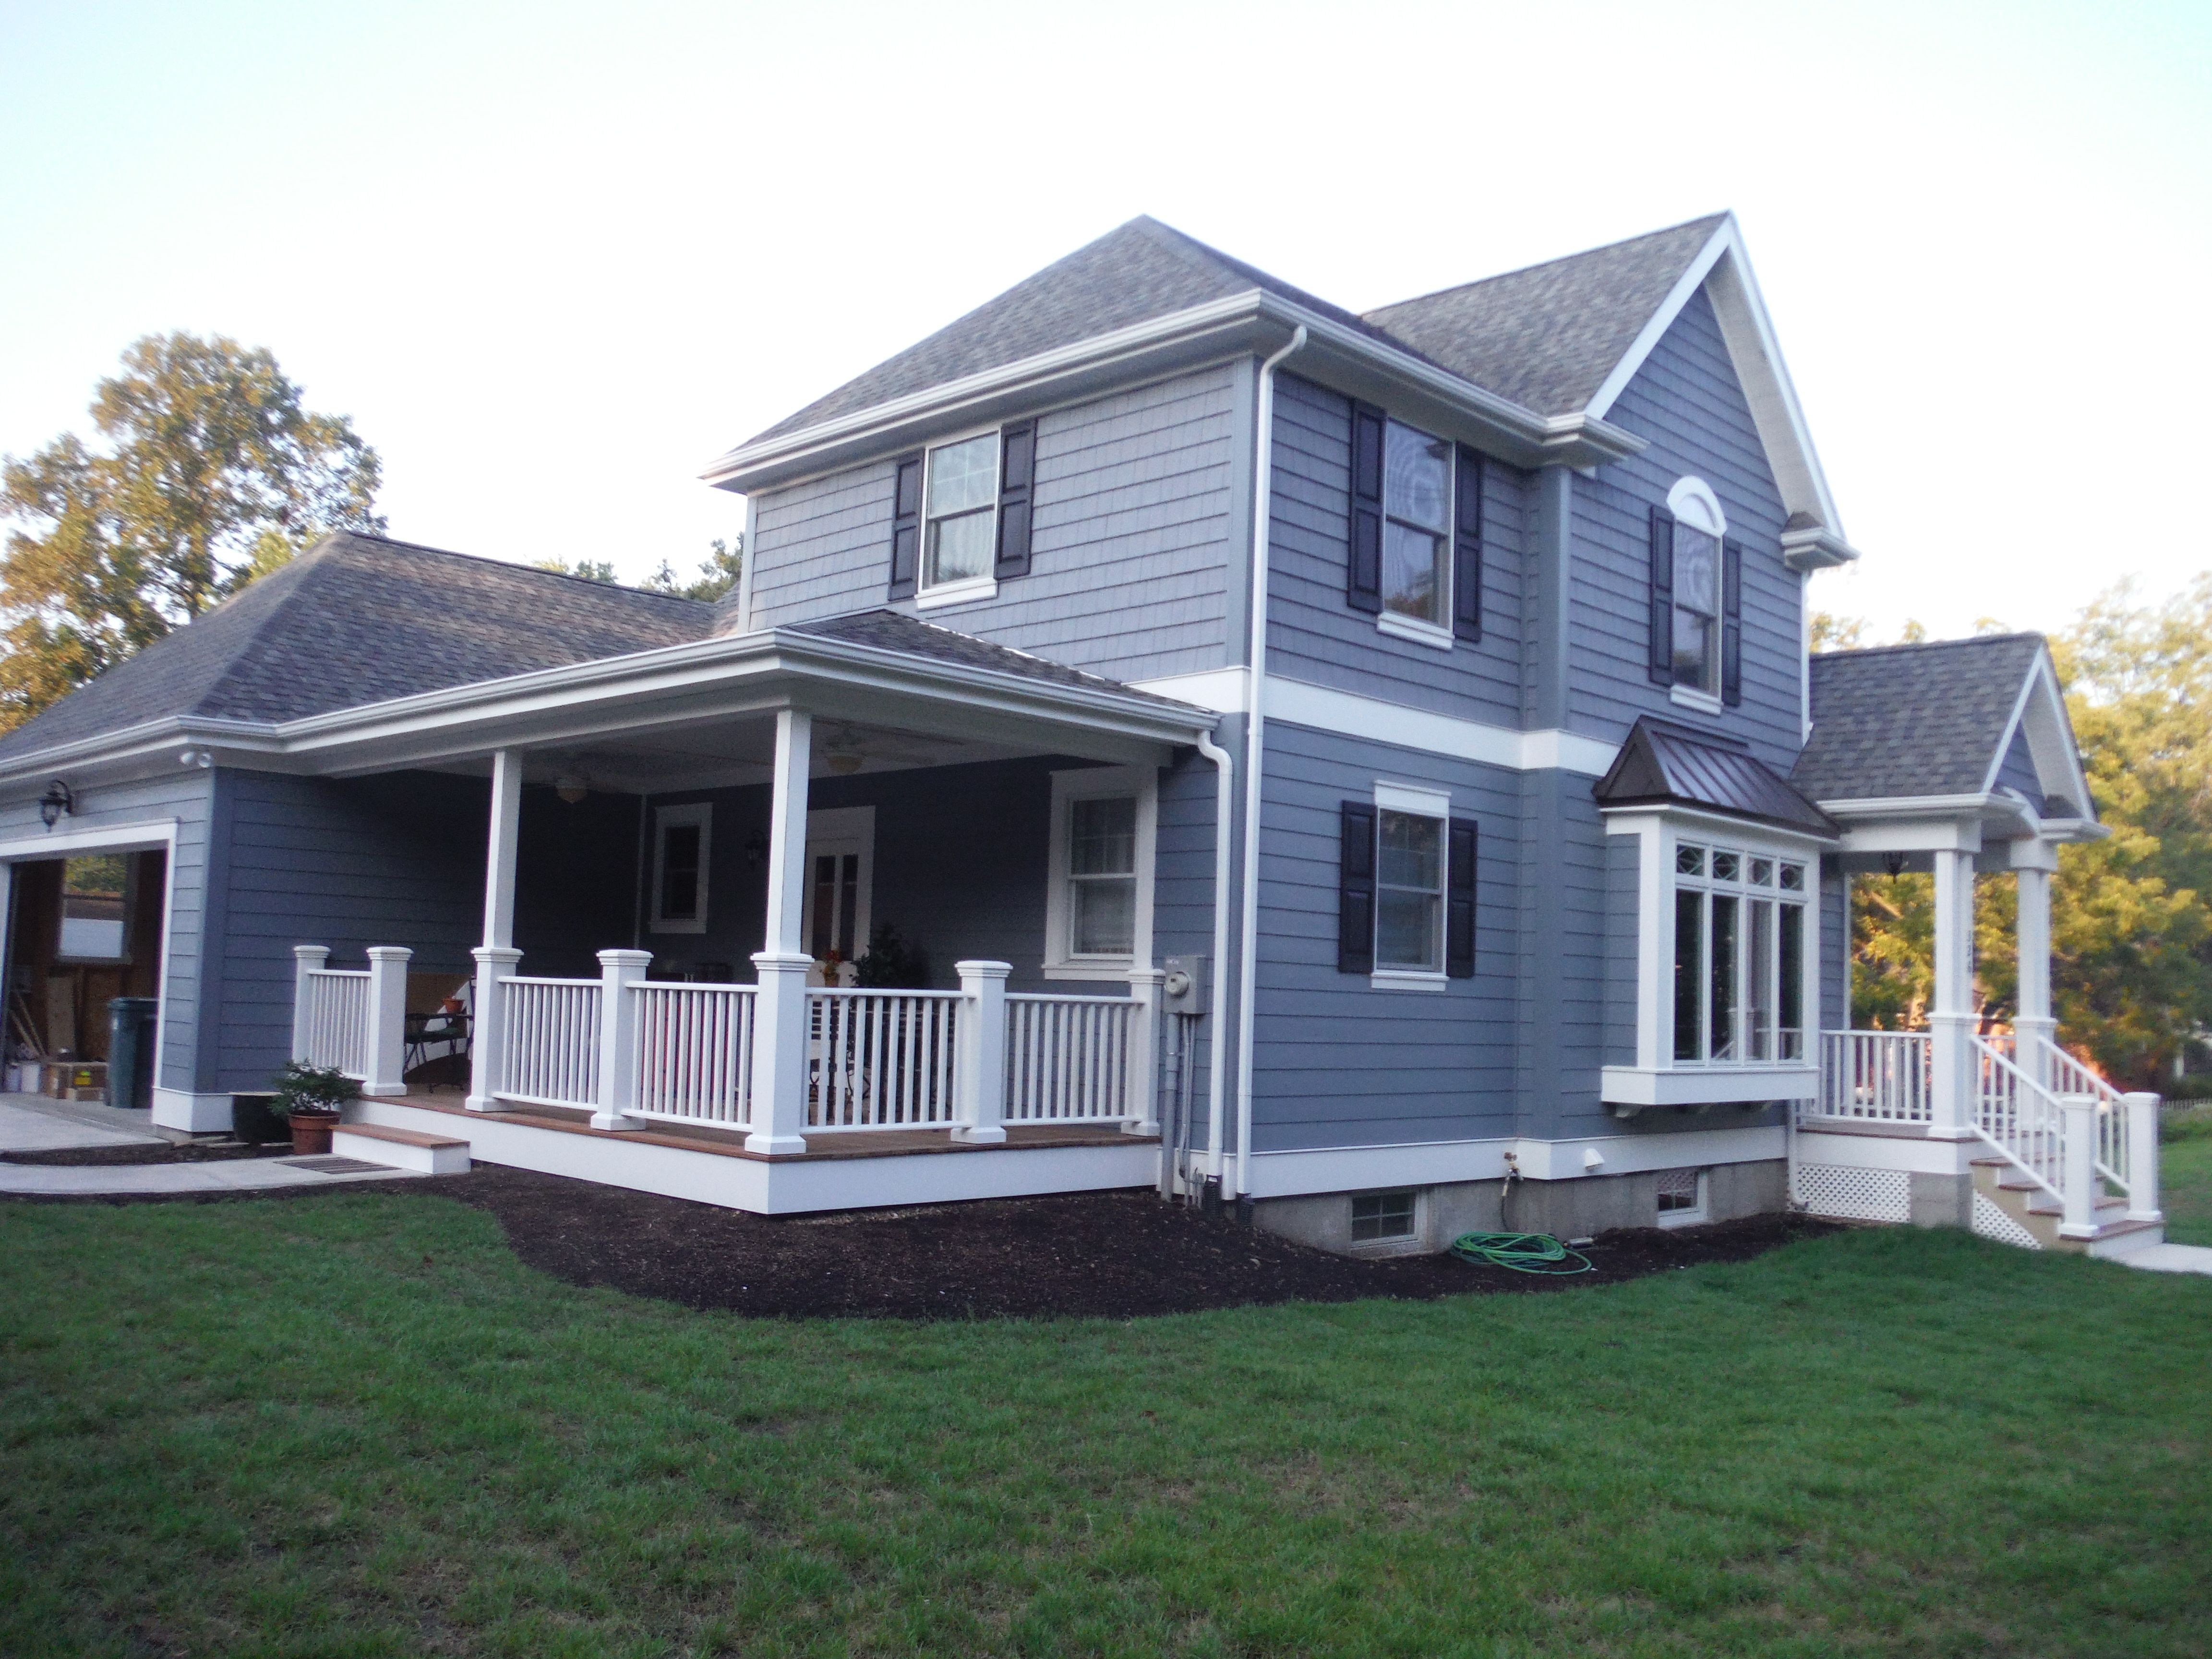 Here Is The Front Of The House Featuring Hardie Boothbay Blue Lap Siding Certainteed Vinyl Perfection Shingle Siding Blue Siding House Exterior Color Schemes